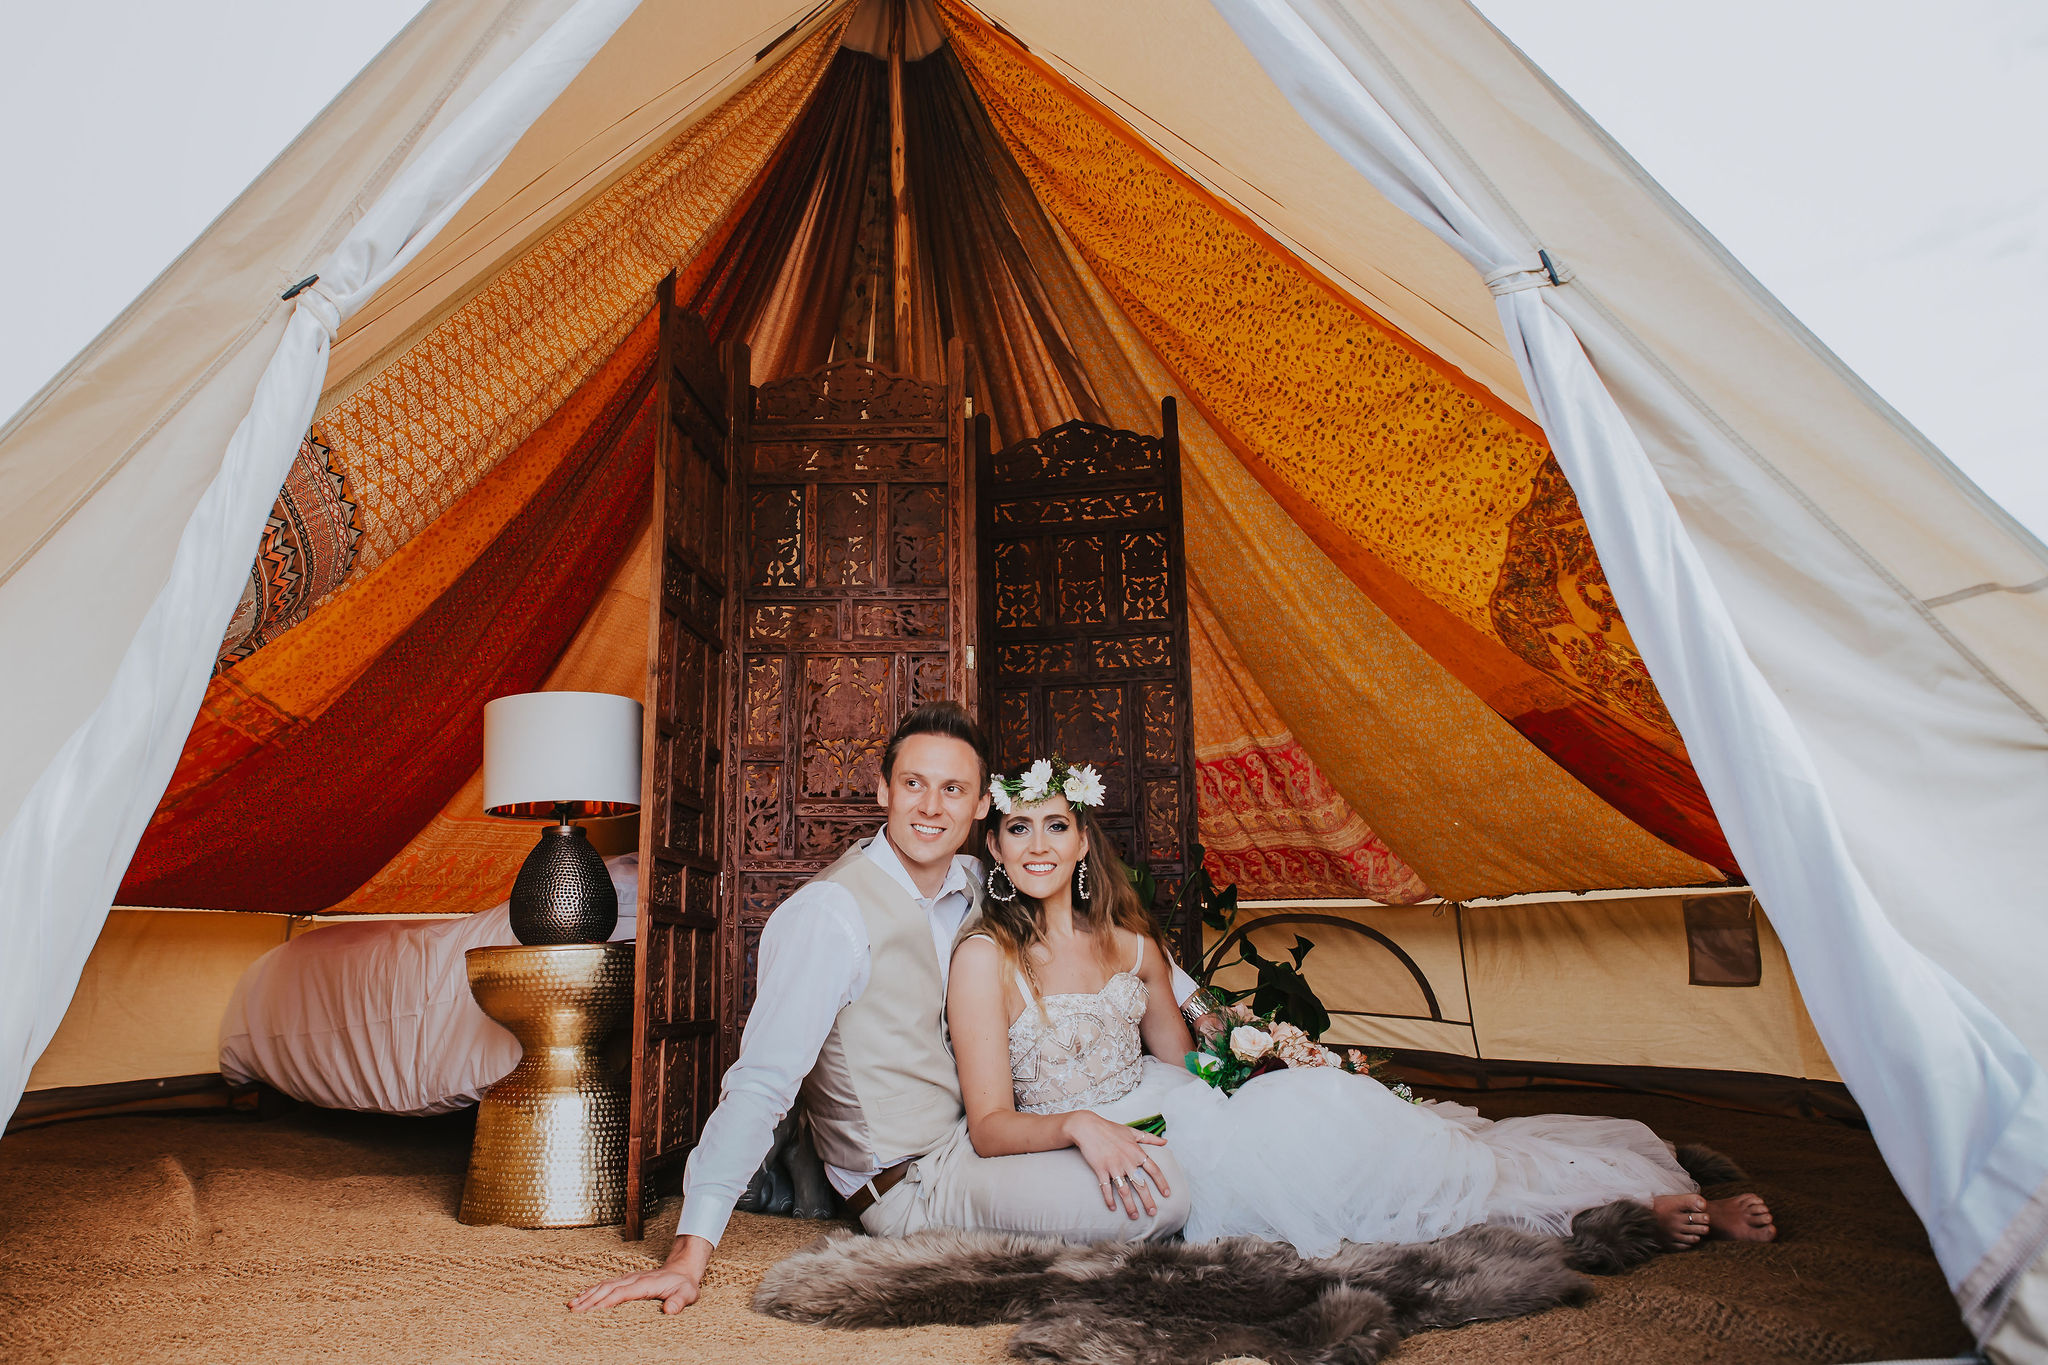 canvas-and-light-white-tipis-beautiful-bells-bridal-tent.jpg